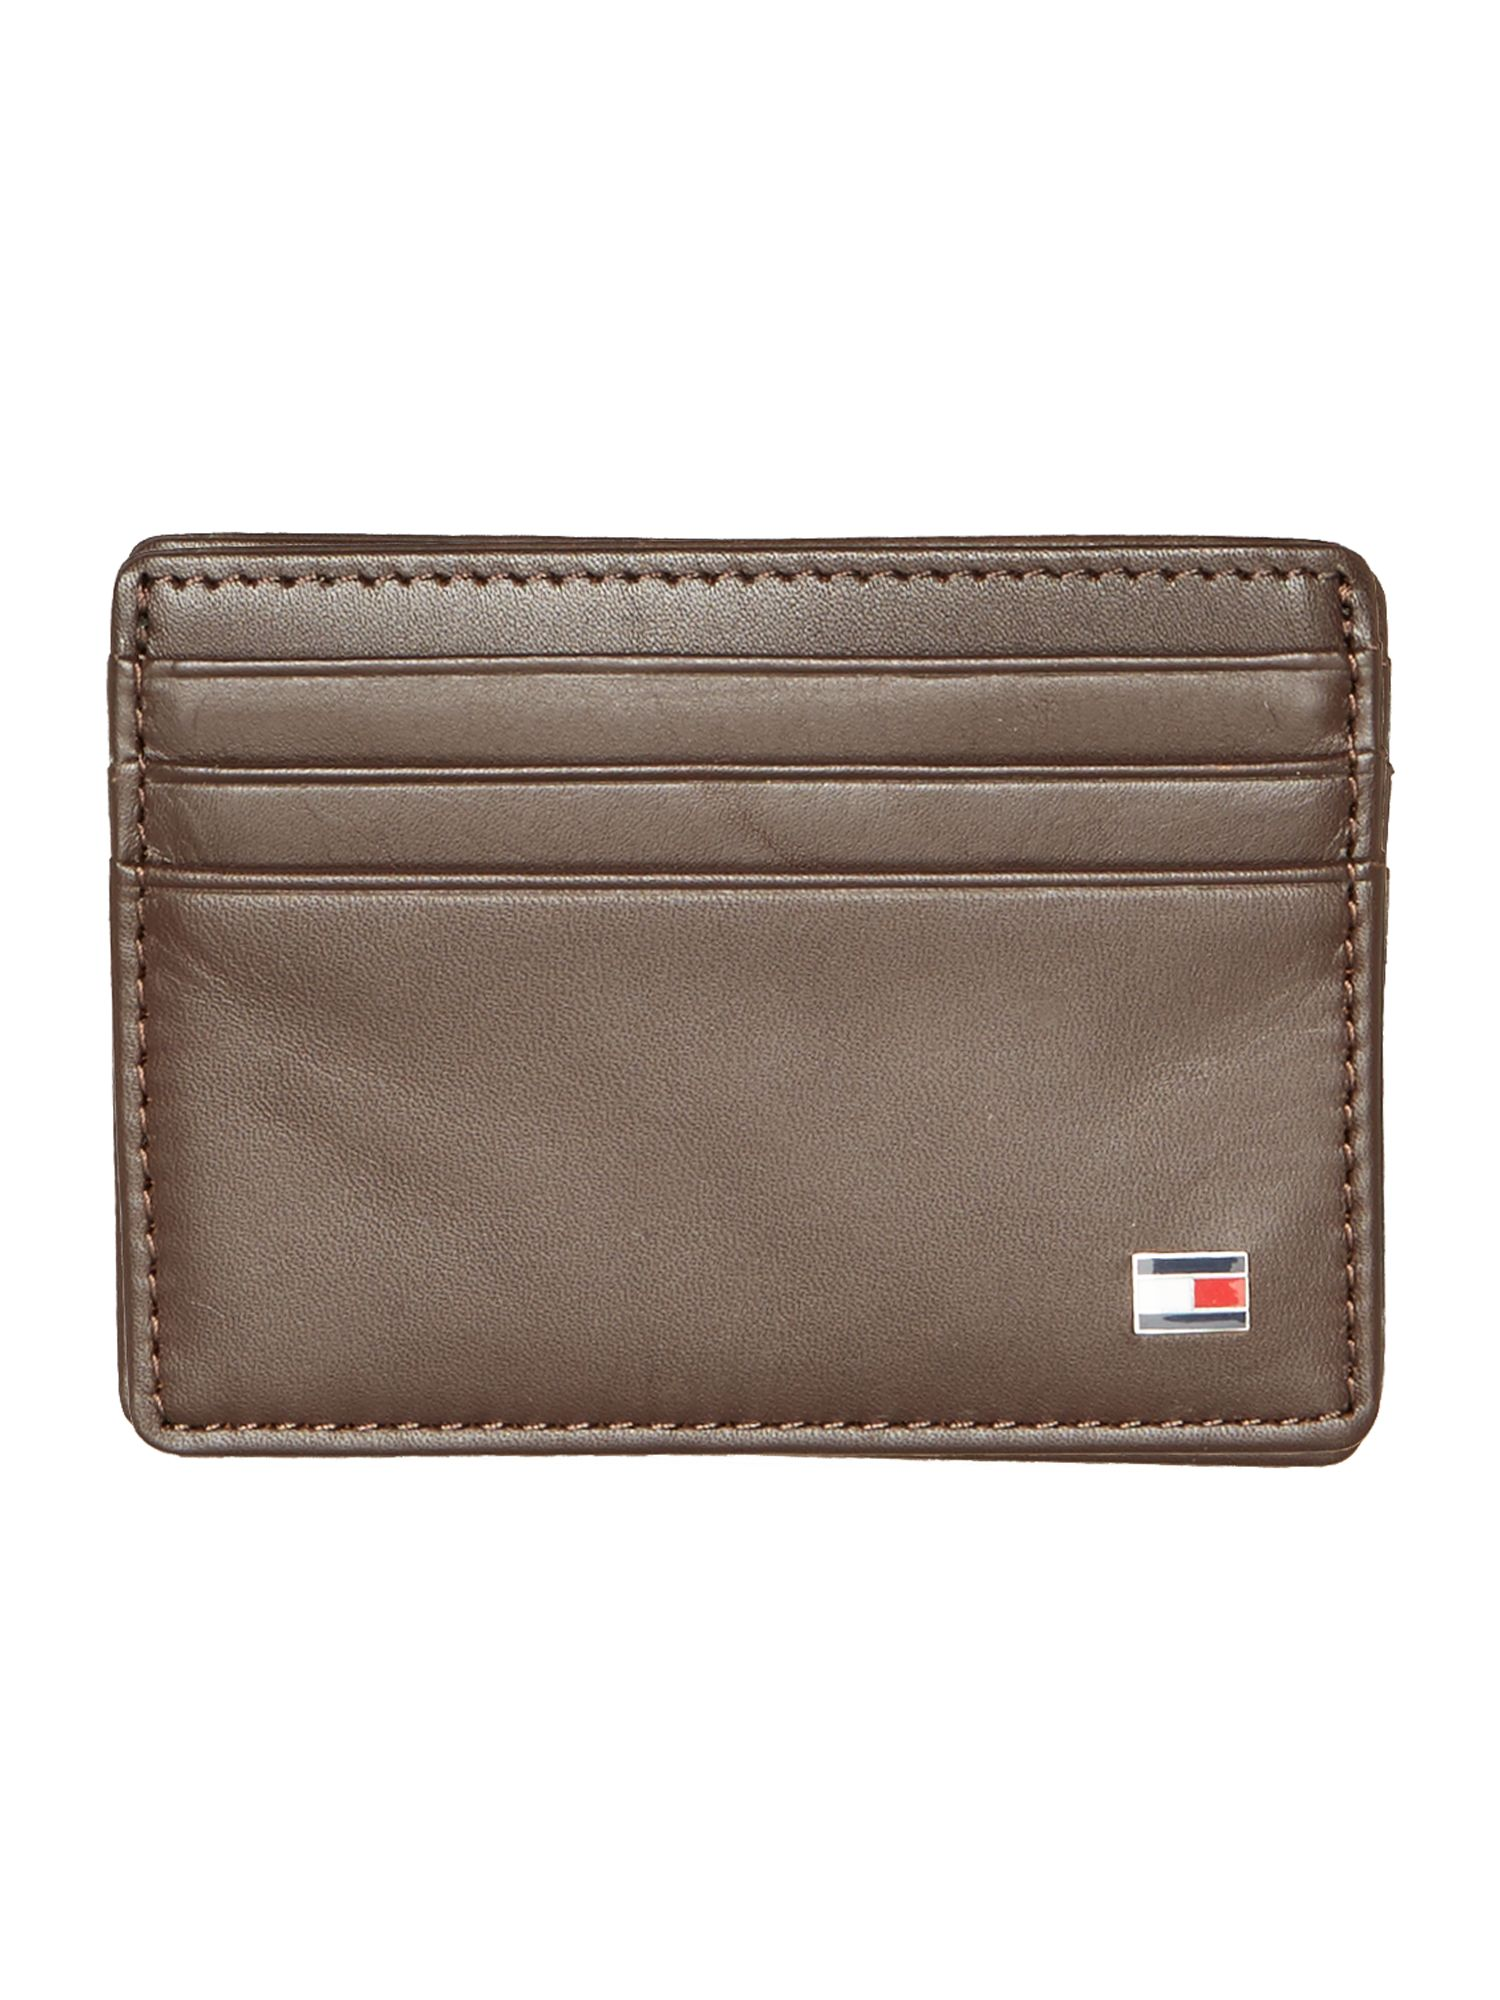 Eton credit card holder